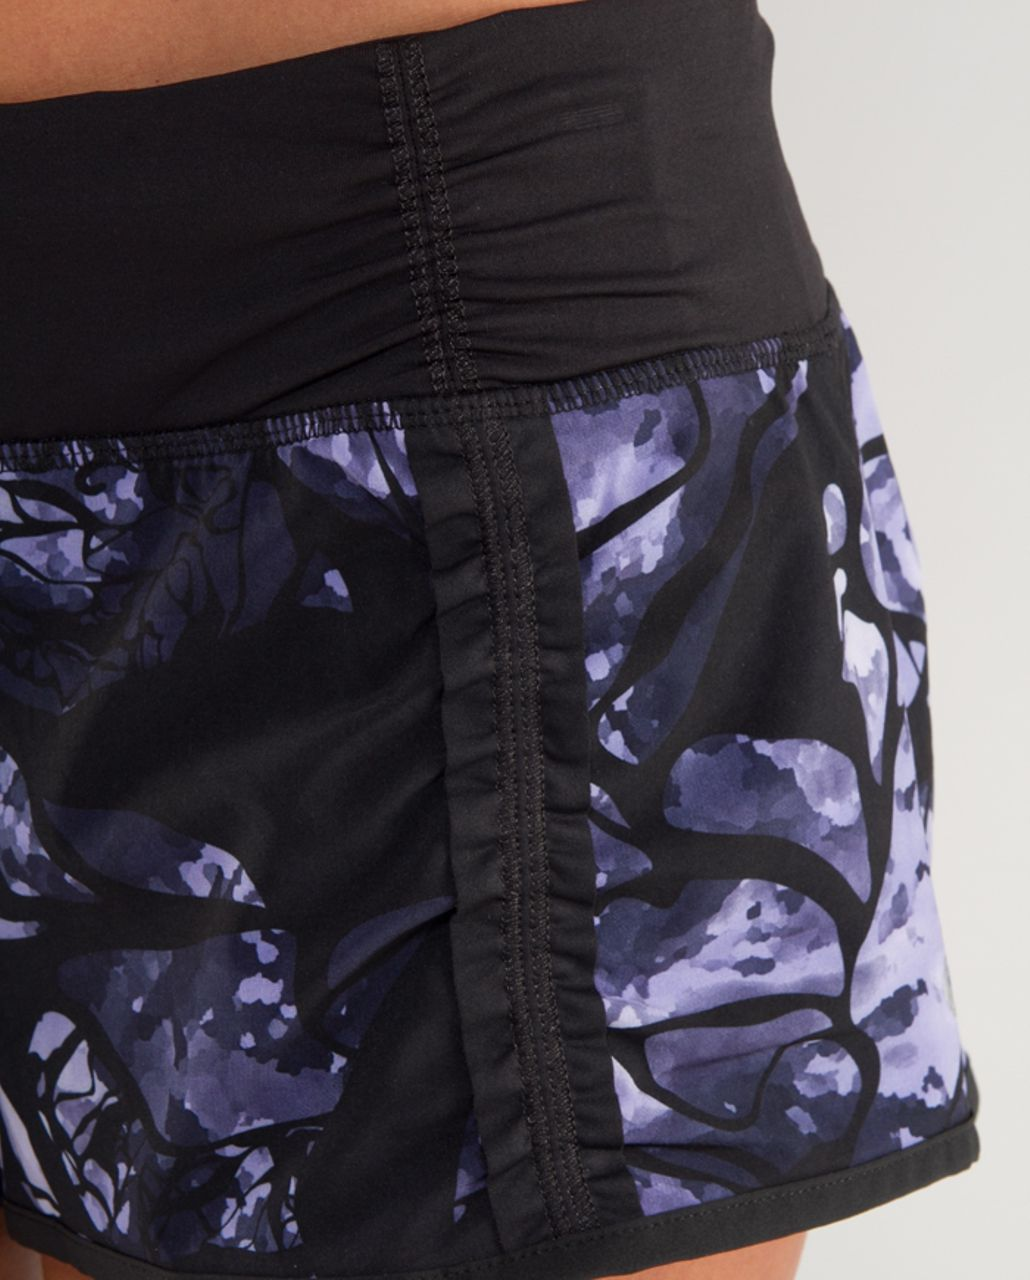 Lululemon Run:  Your Heart Out Short - Black Swan Creekside Camo /  Black